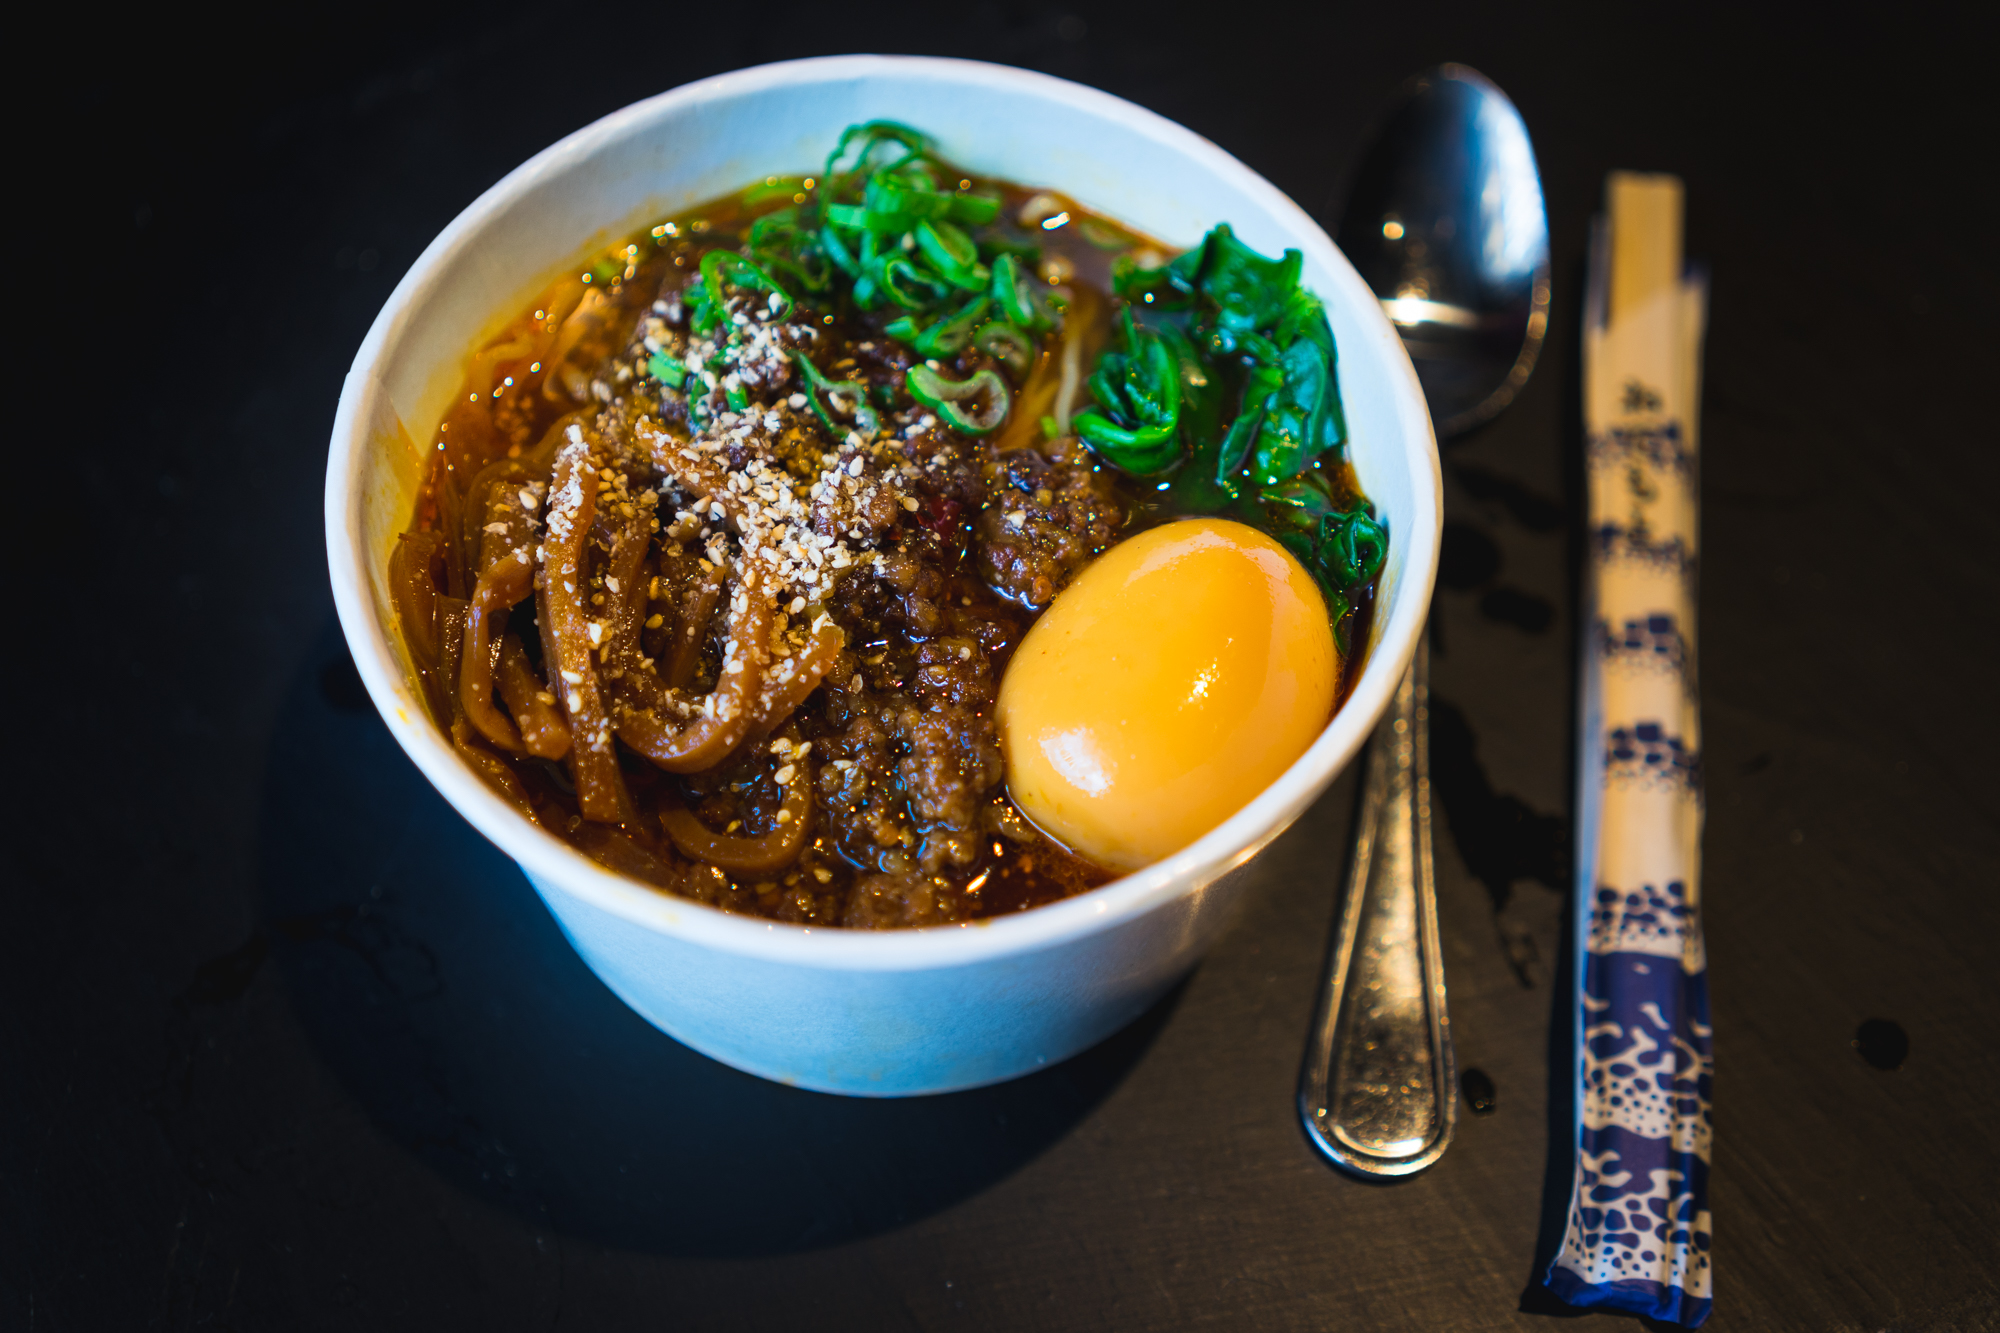 Tanpopo Oslo Ramen is soon-to-open in Oslo under a new name